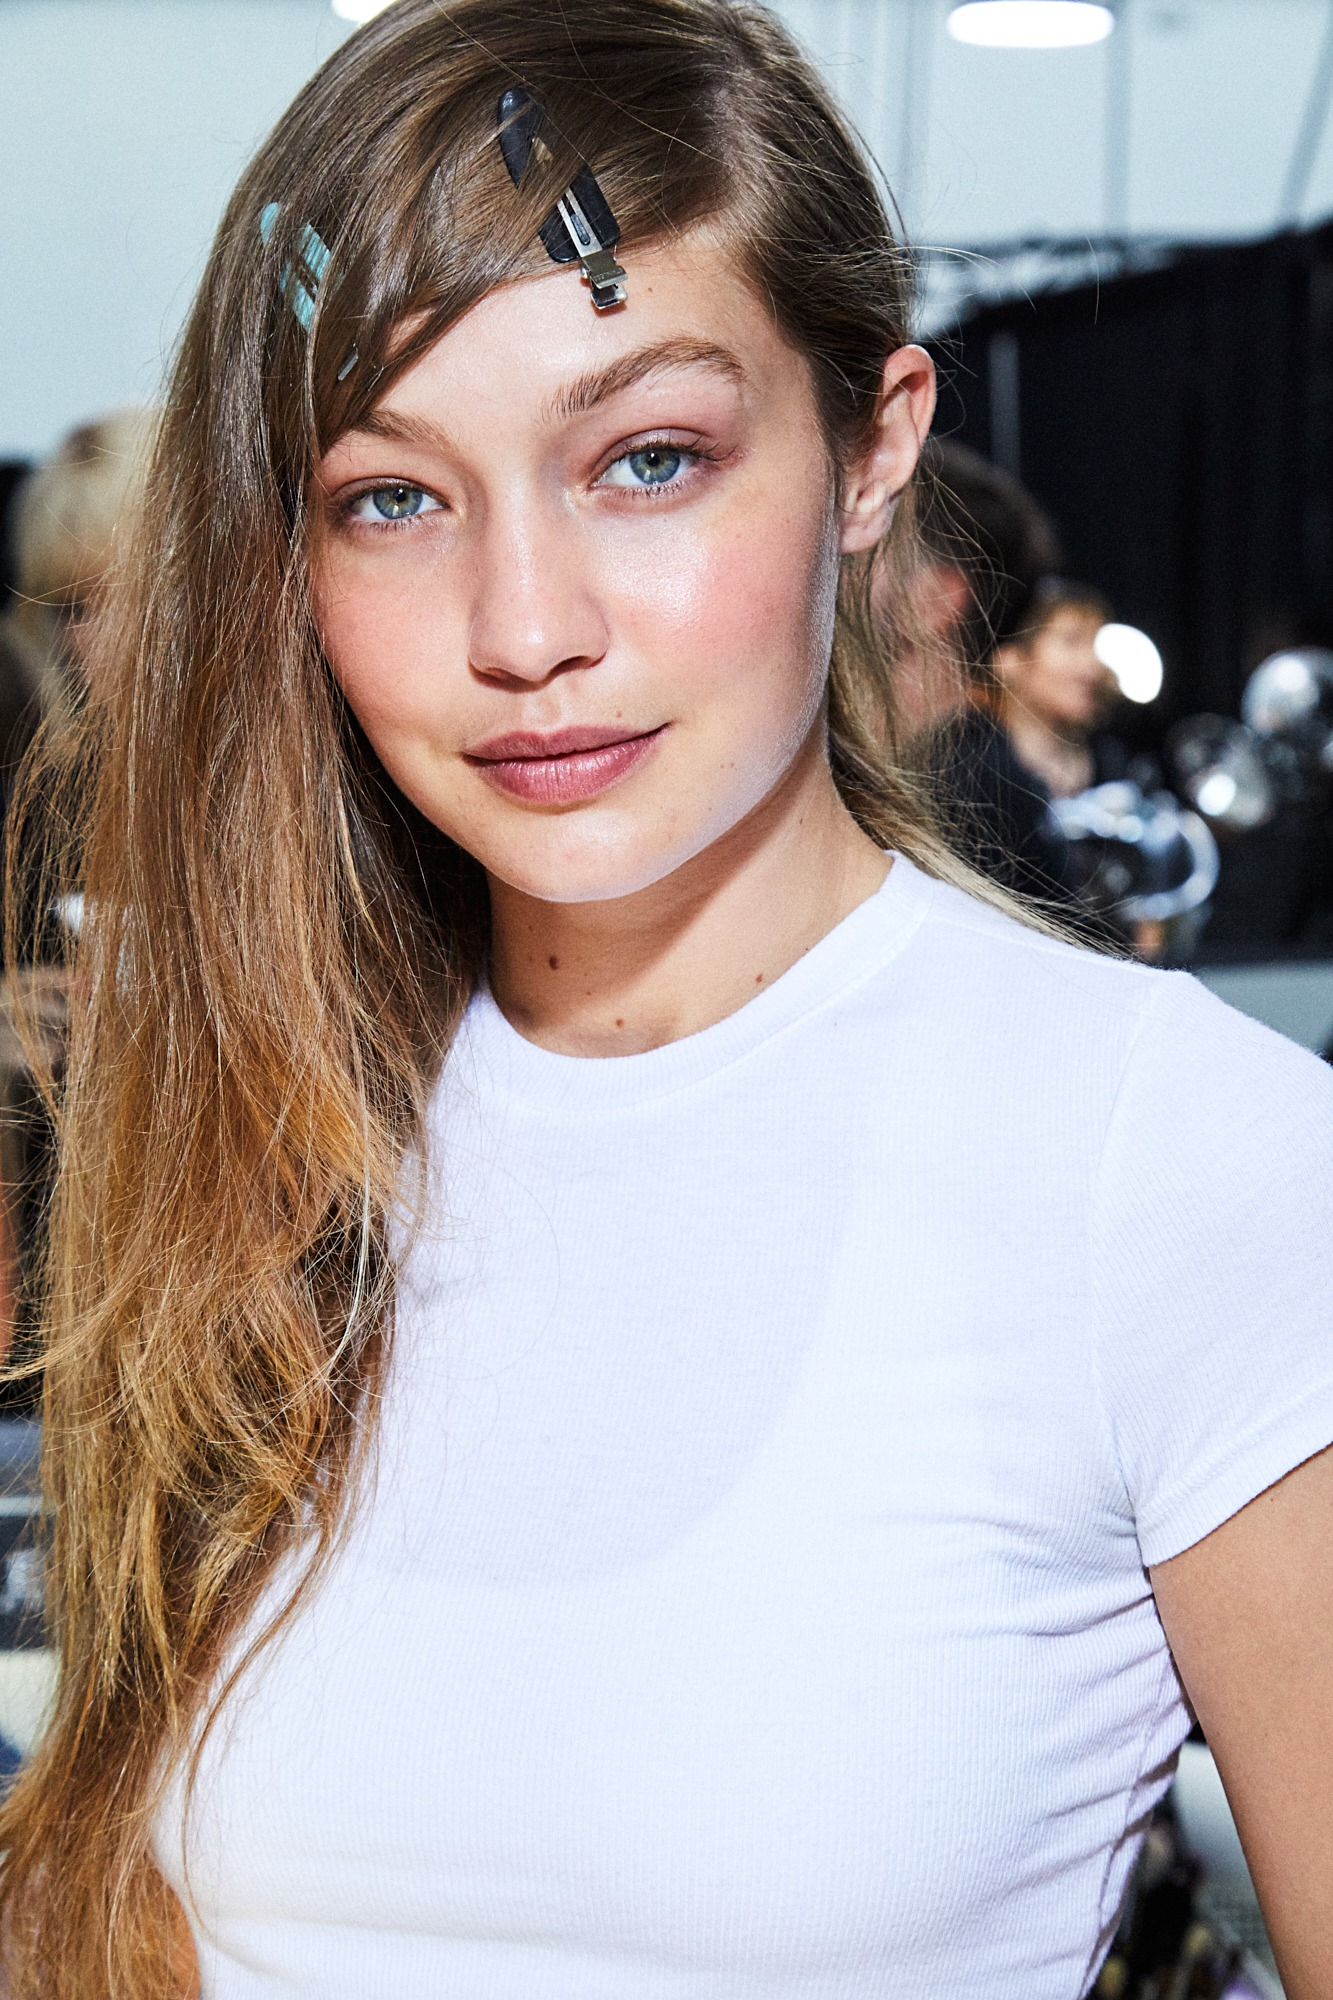 Gigi Hadid MICHAEL KORS BACKSTAGE Sept 2019 SS20 Maybelline Looks Blush Soft SincerelyHumble Blog 1